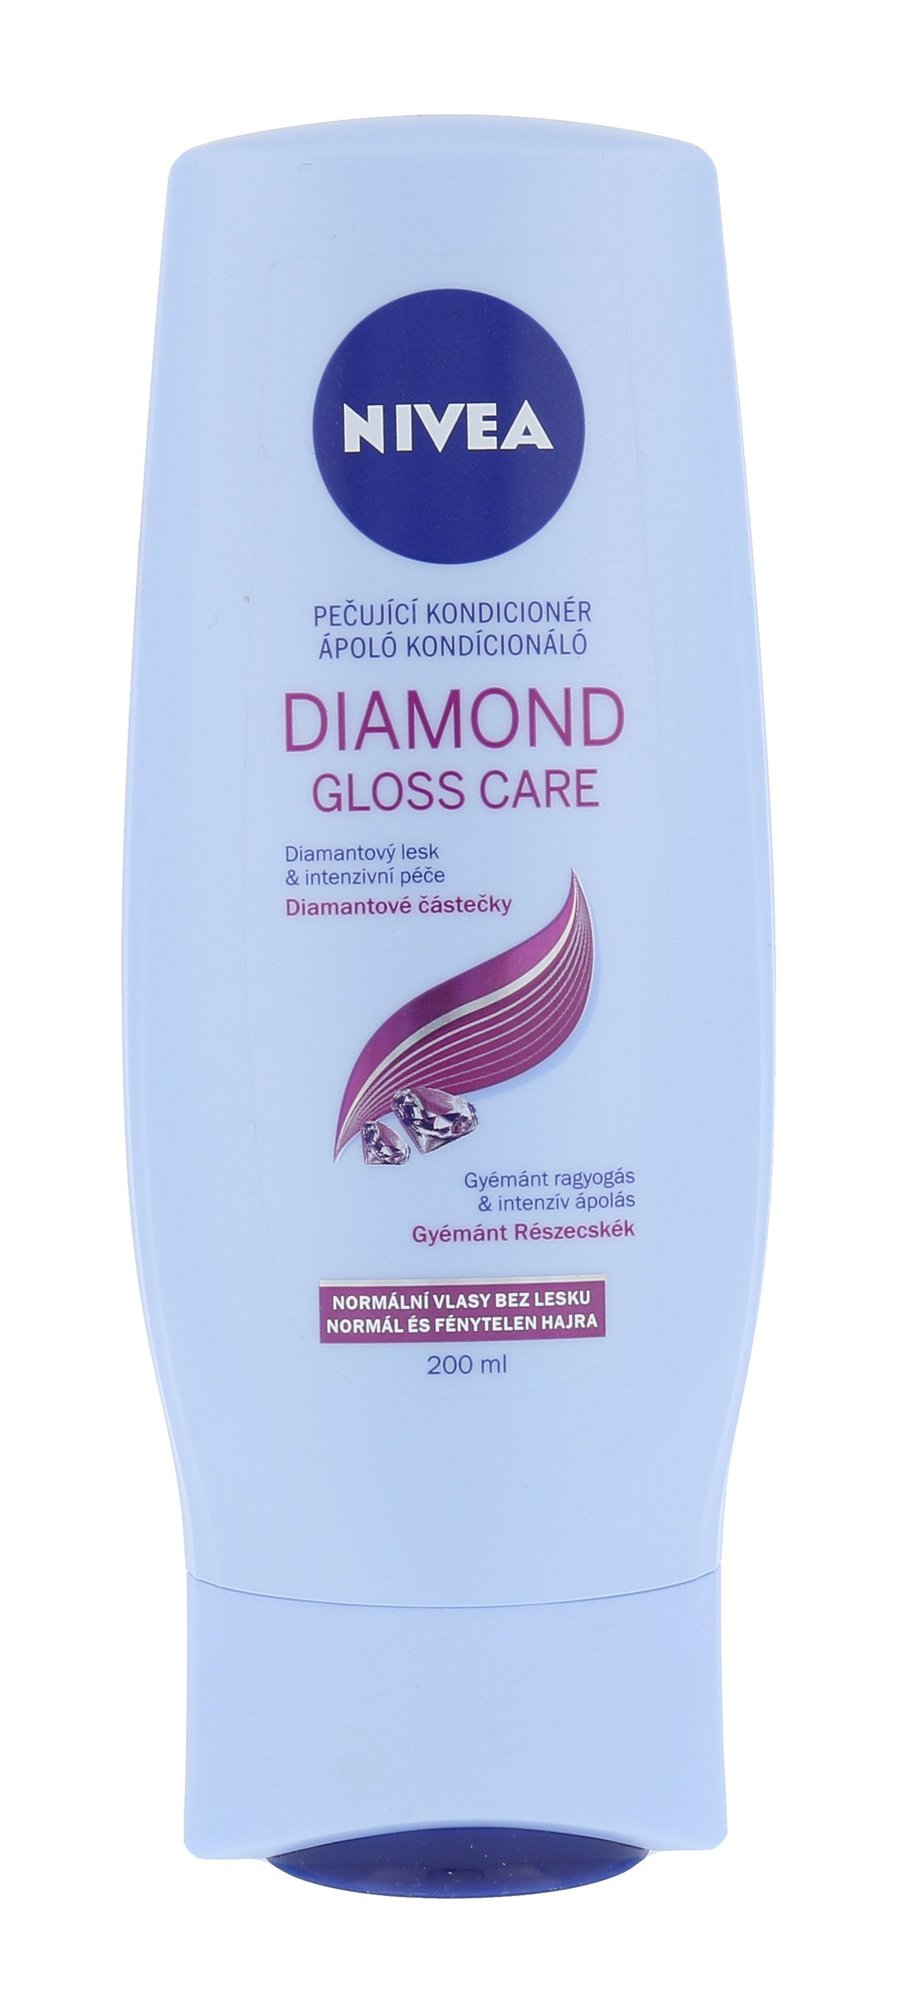 Plaukų kondicionierius Nivea Diamond Gloss Care